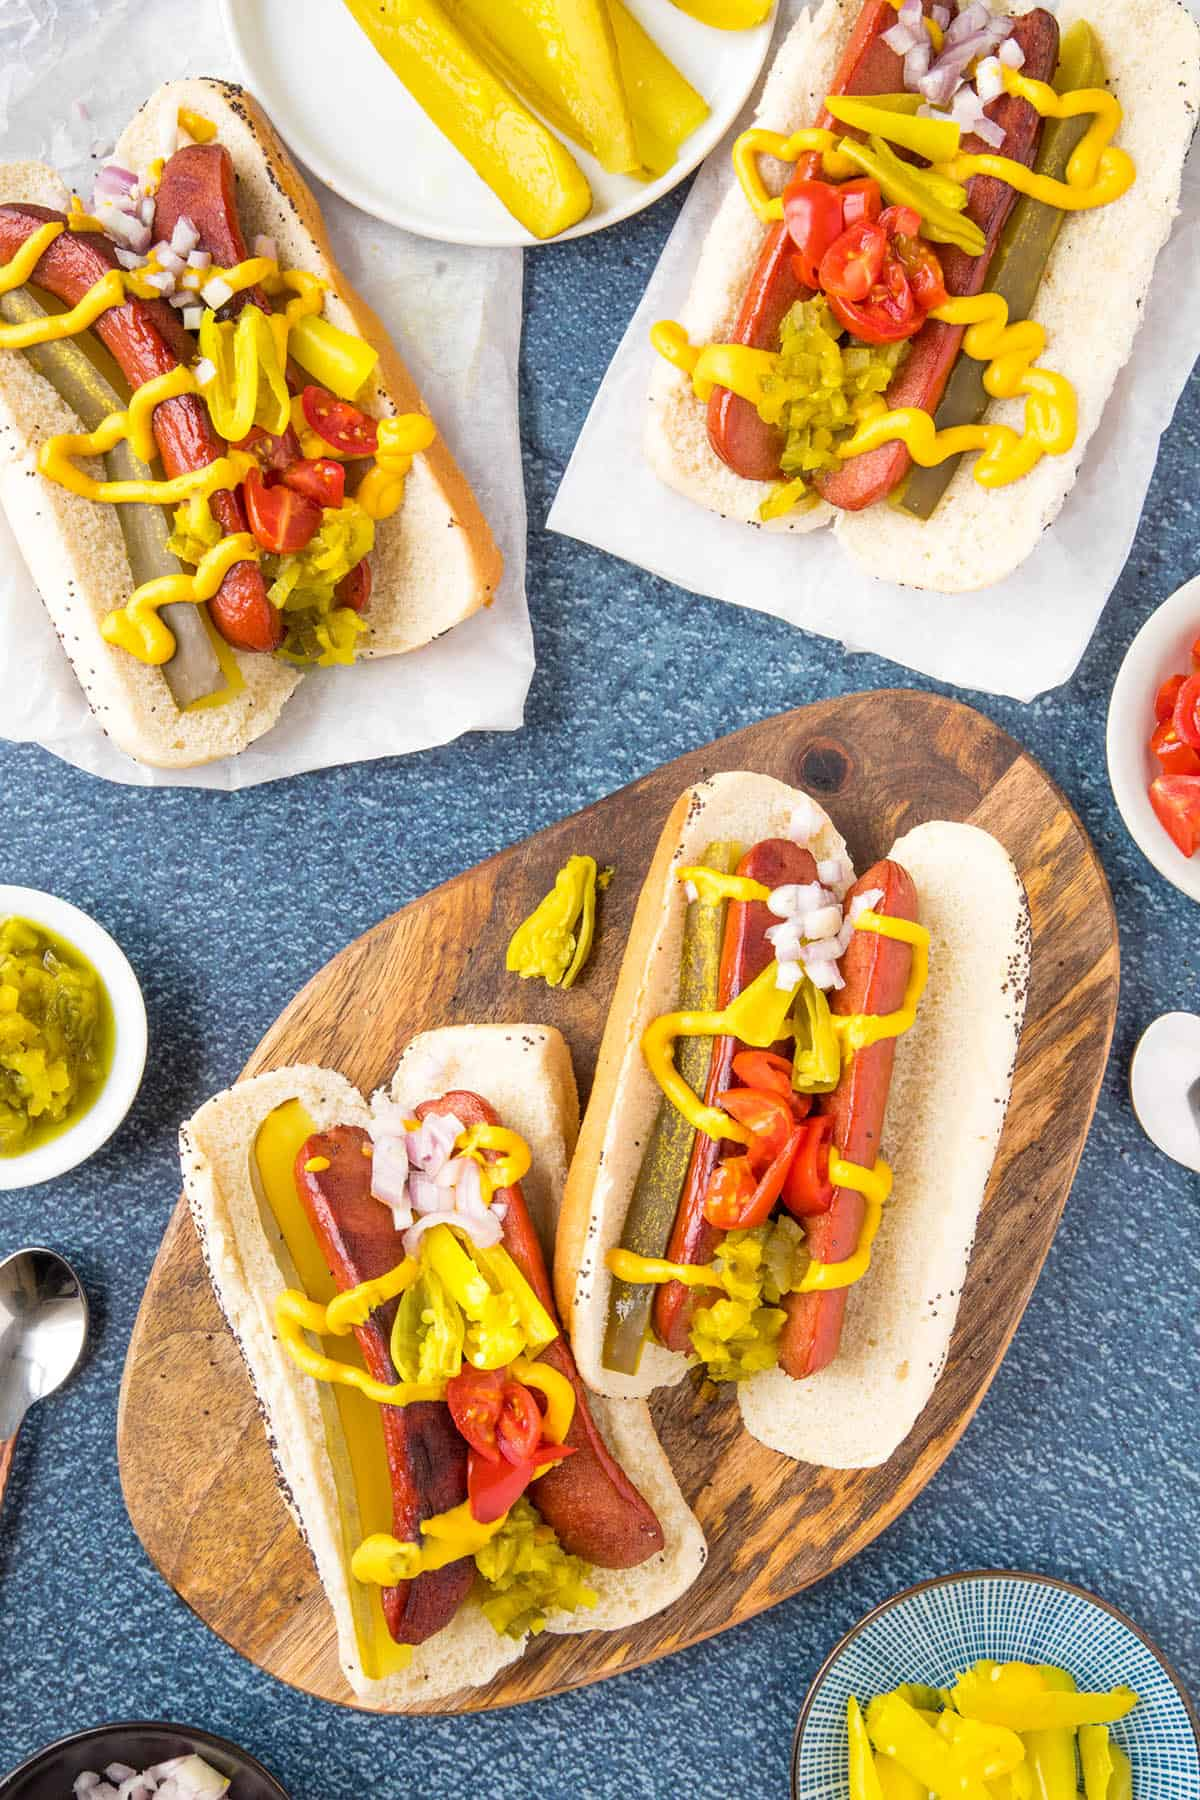 Chicago Style Hot Dogs, ready to eat